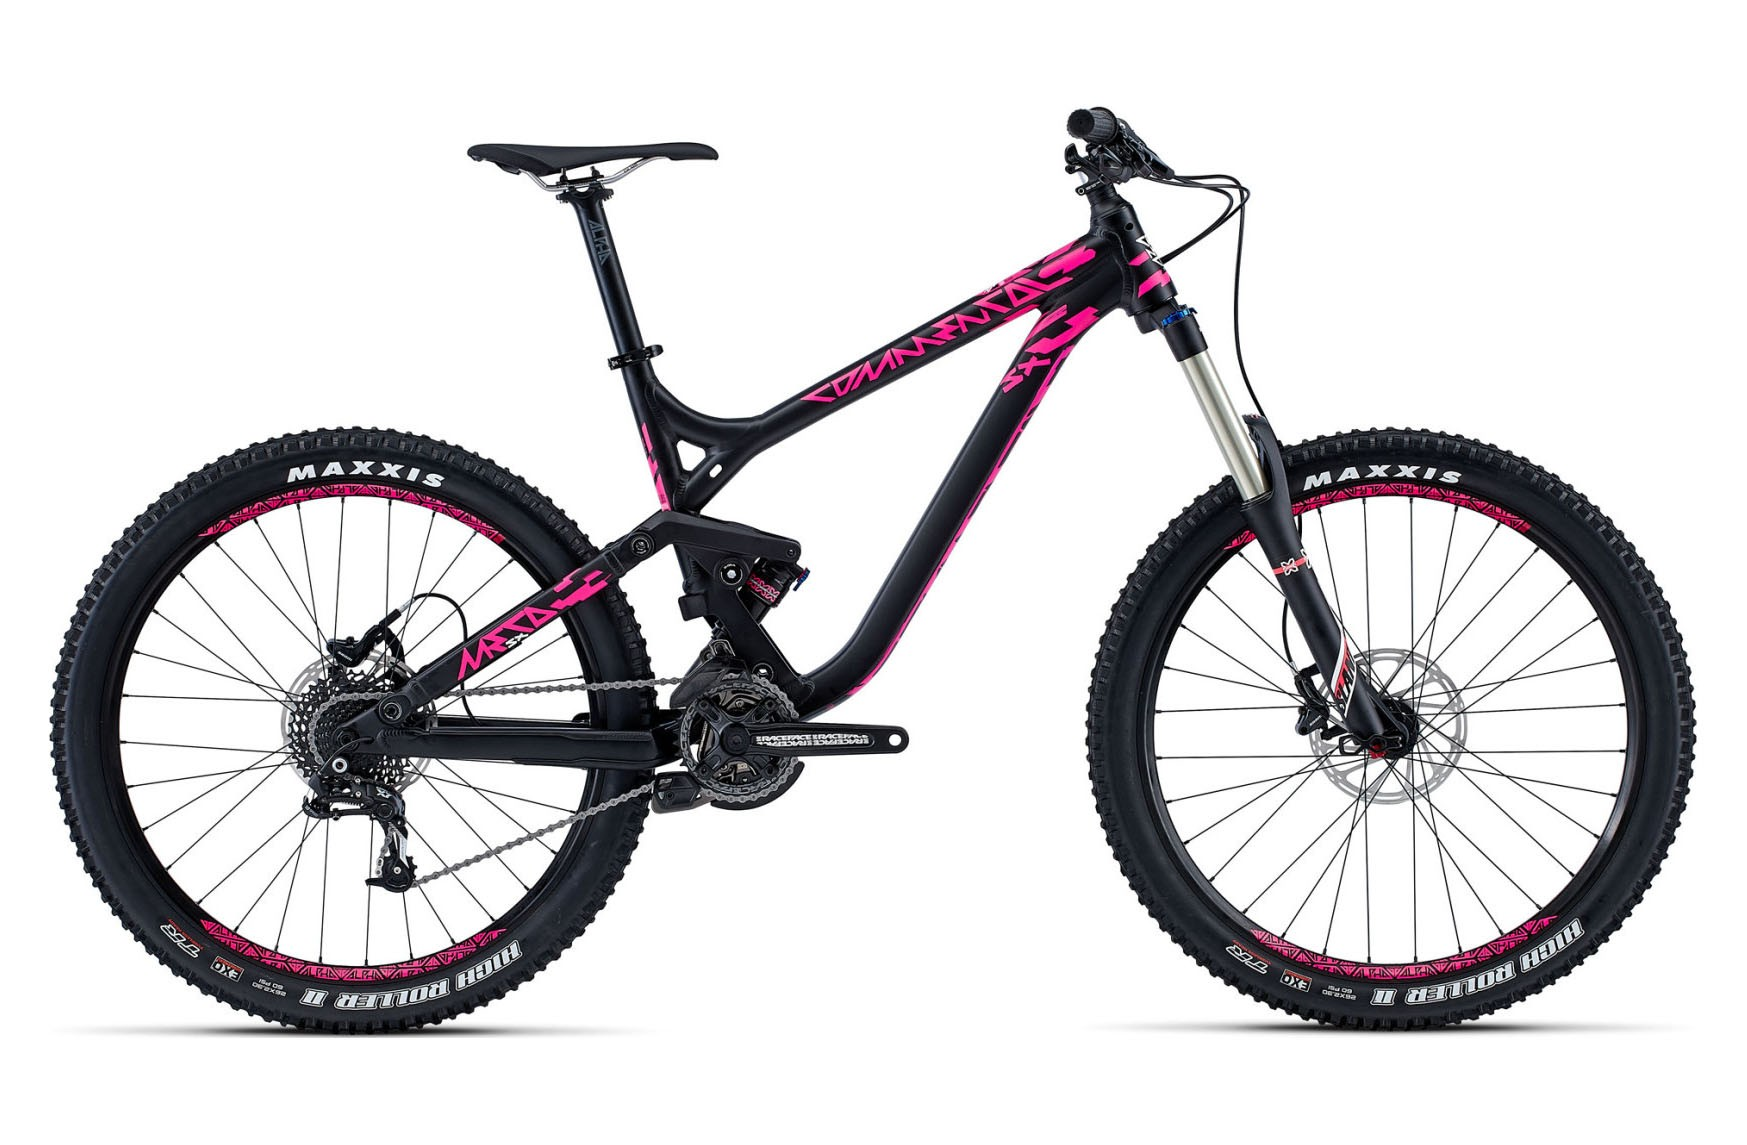 Горный велосипед Commencal Meta SX Origin 26 (2015)